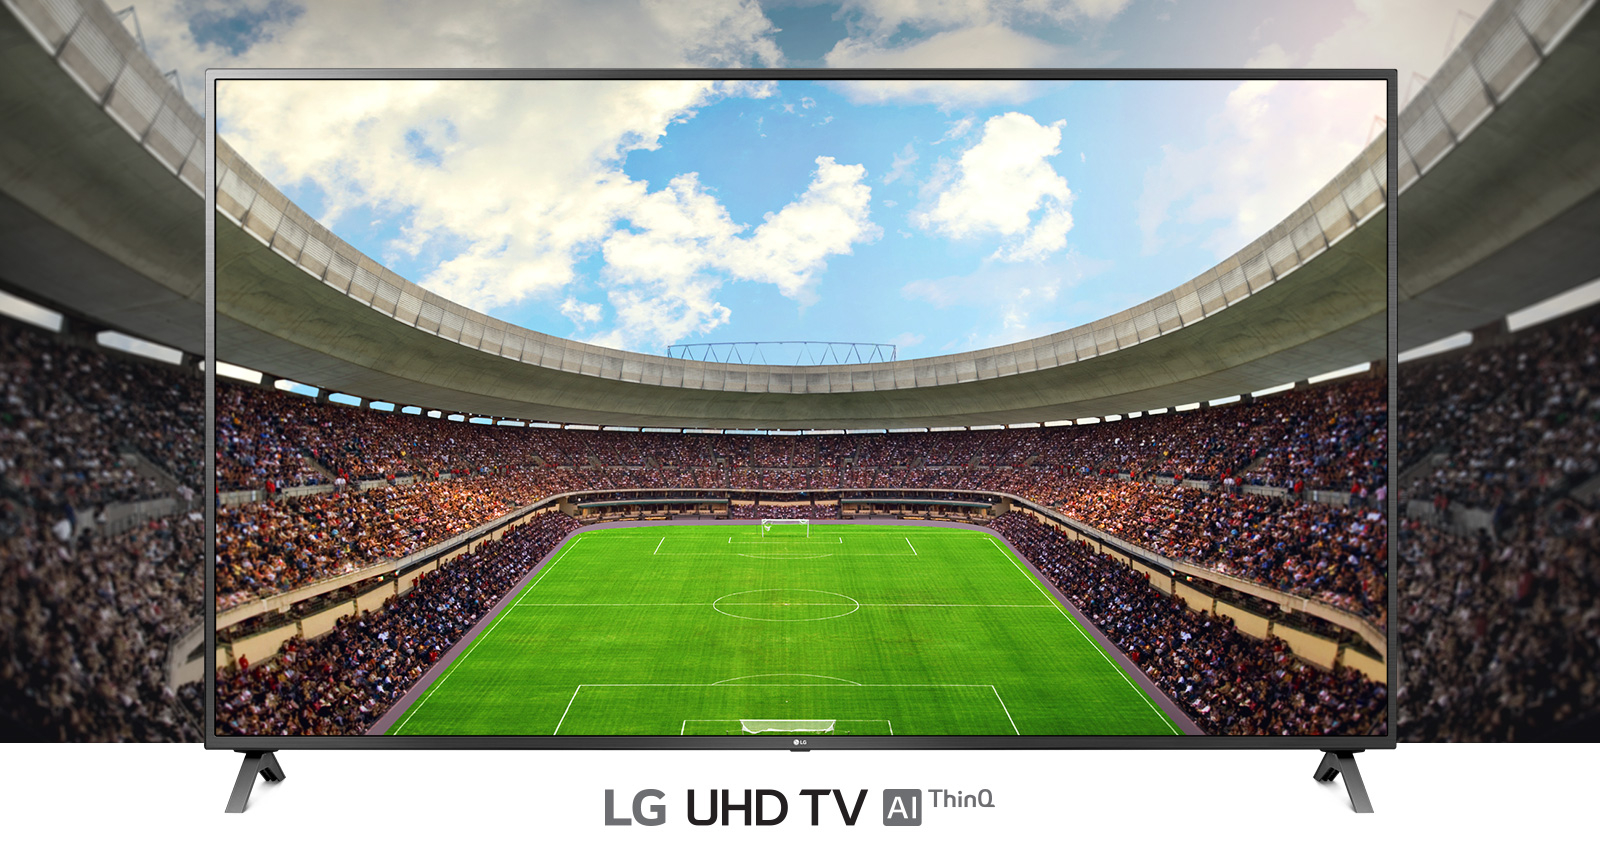 LG UN81 4K Smart UHD TV